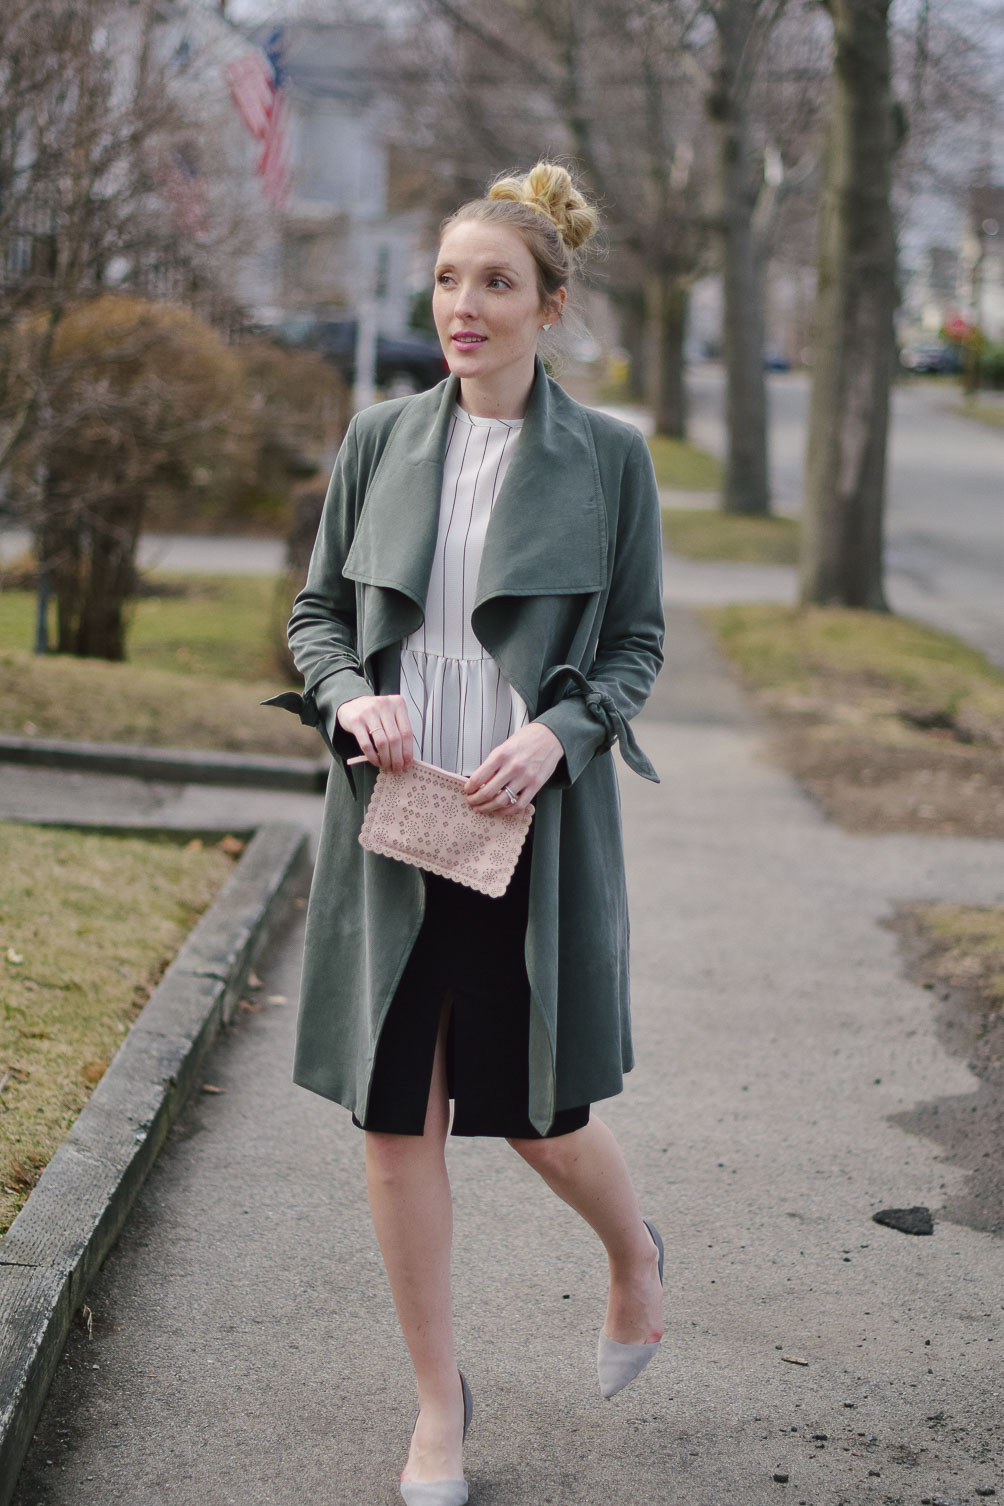 styling a feminine green trench coat for transitioning to spring with peplum details and a pencil skirt